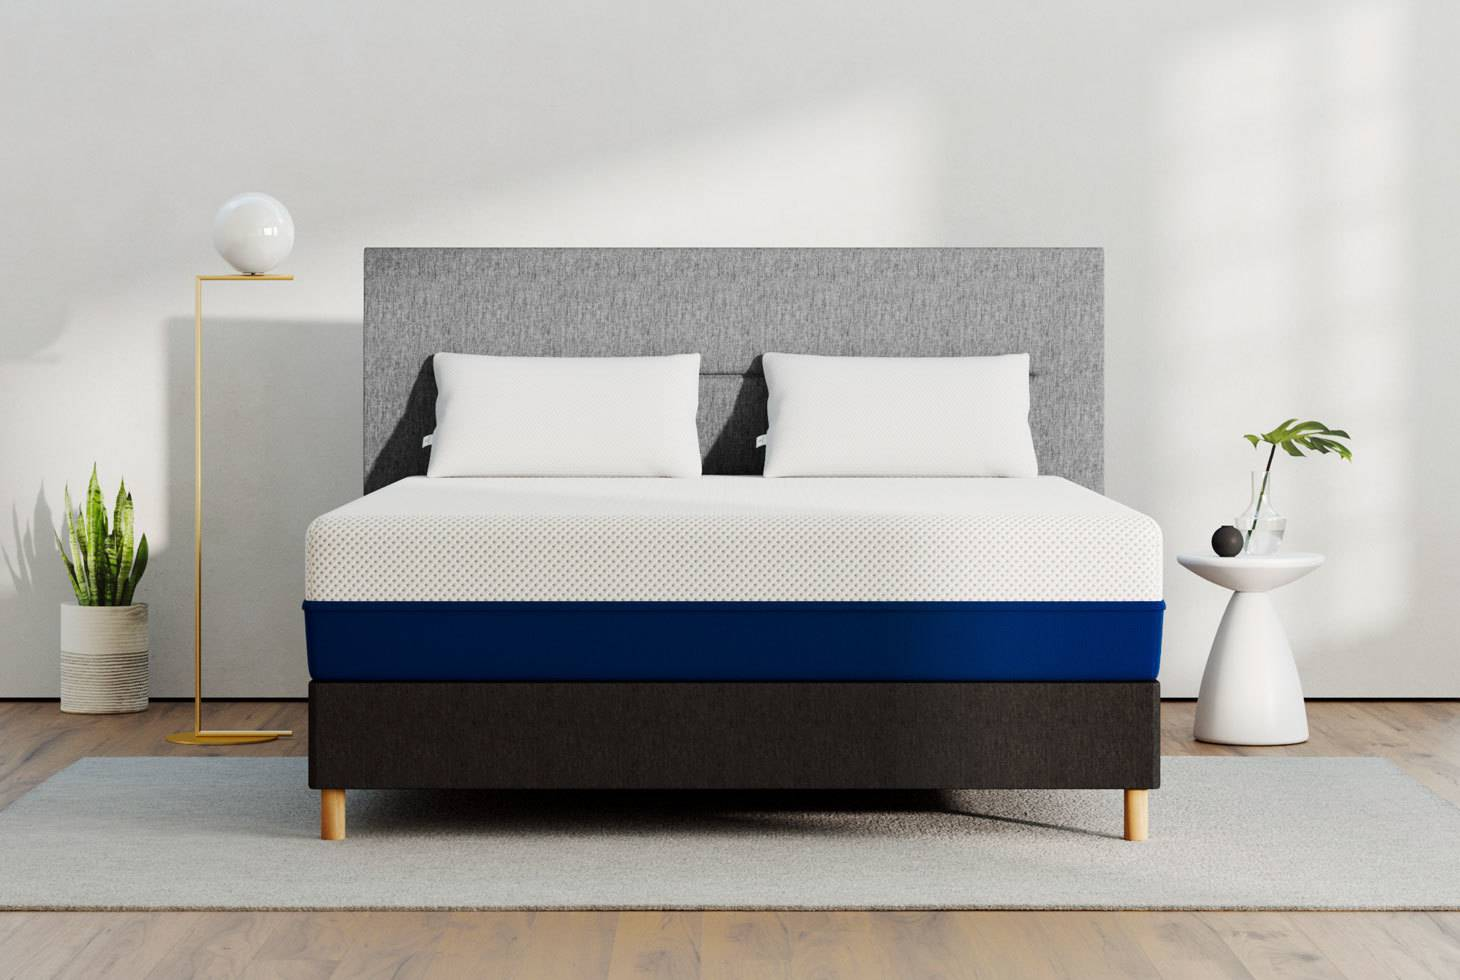 Amerisleep's AS3 Hybrid Mattress Coupon Page - The Sleep Judge